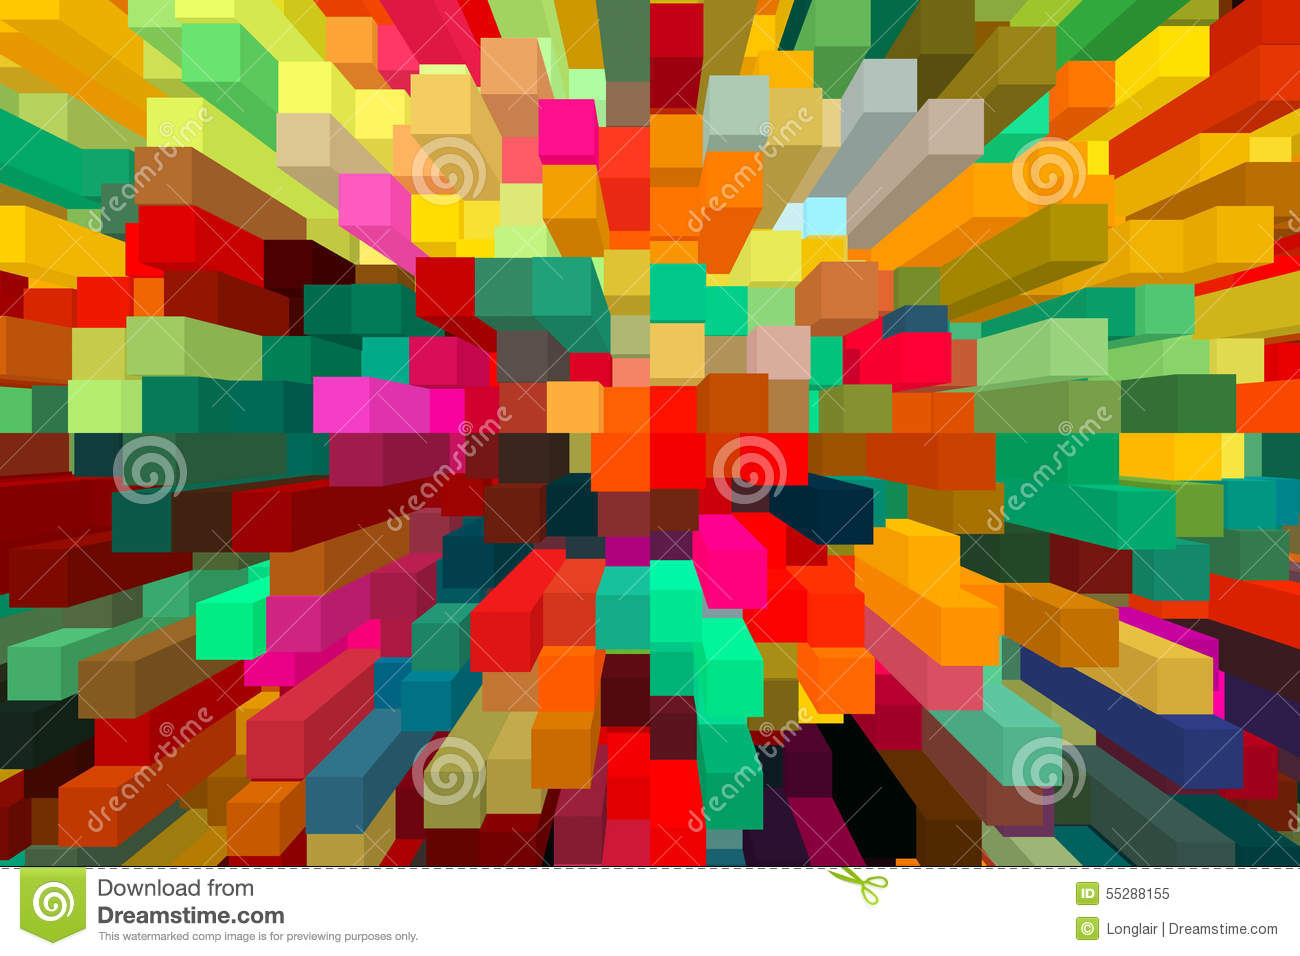 Curved stripe also Science background furthermore 1061731 besides Medically Accurate Illustration Human Sperms 319477082 moreover Stock Photo Kaleidoscope Abstract Art Seamless Geometric Patterns Optical Illusion Science Background. on green futuristic pattern cells background